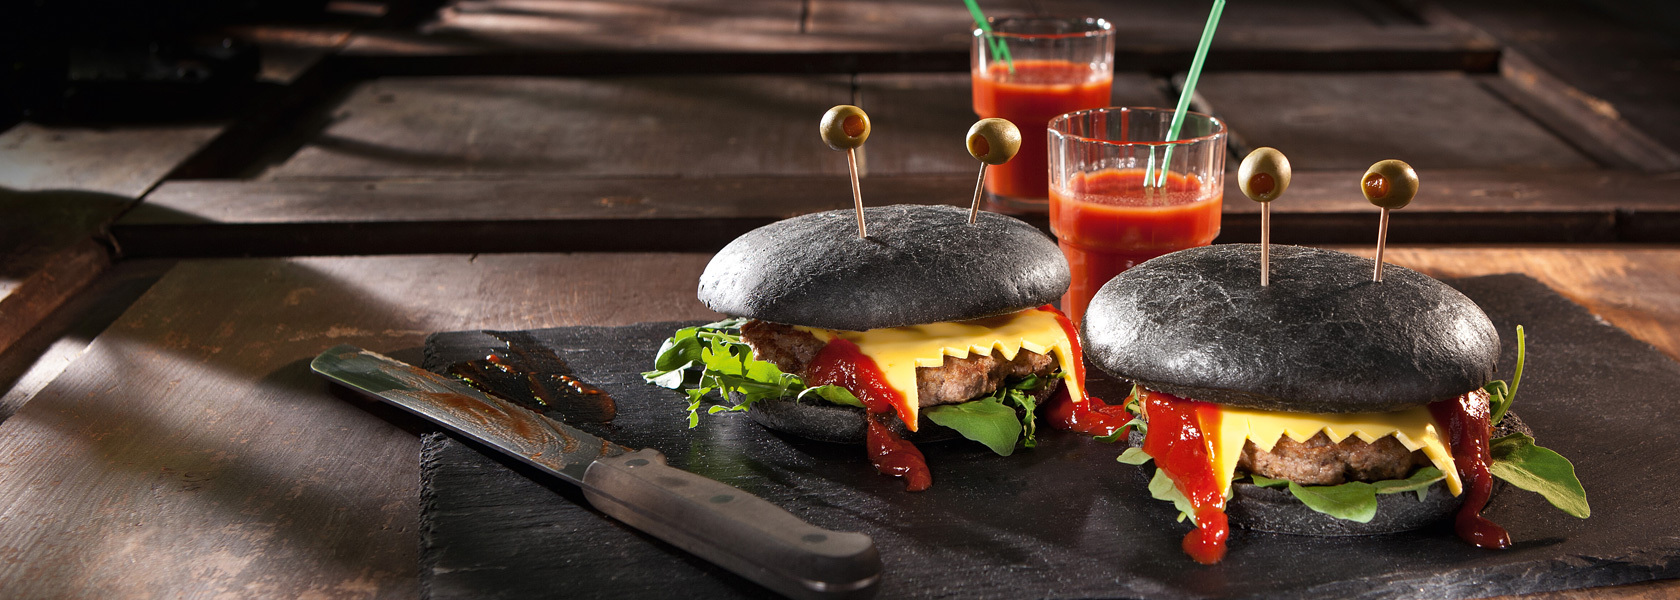 Art. 1845, Black Burger